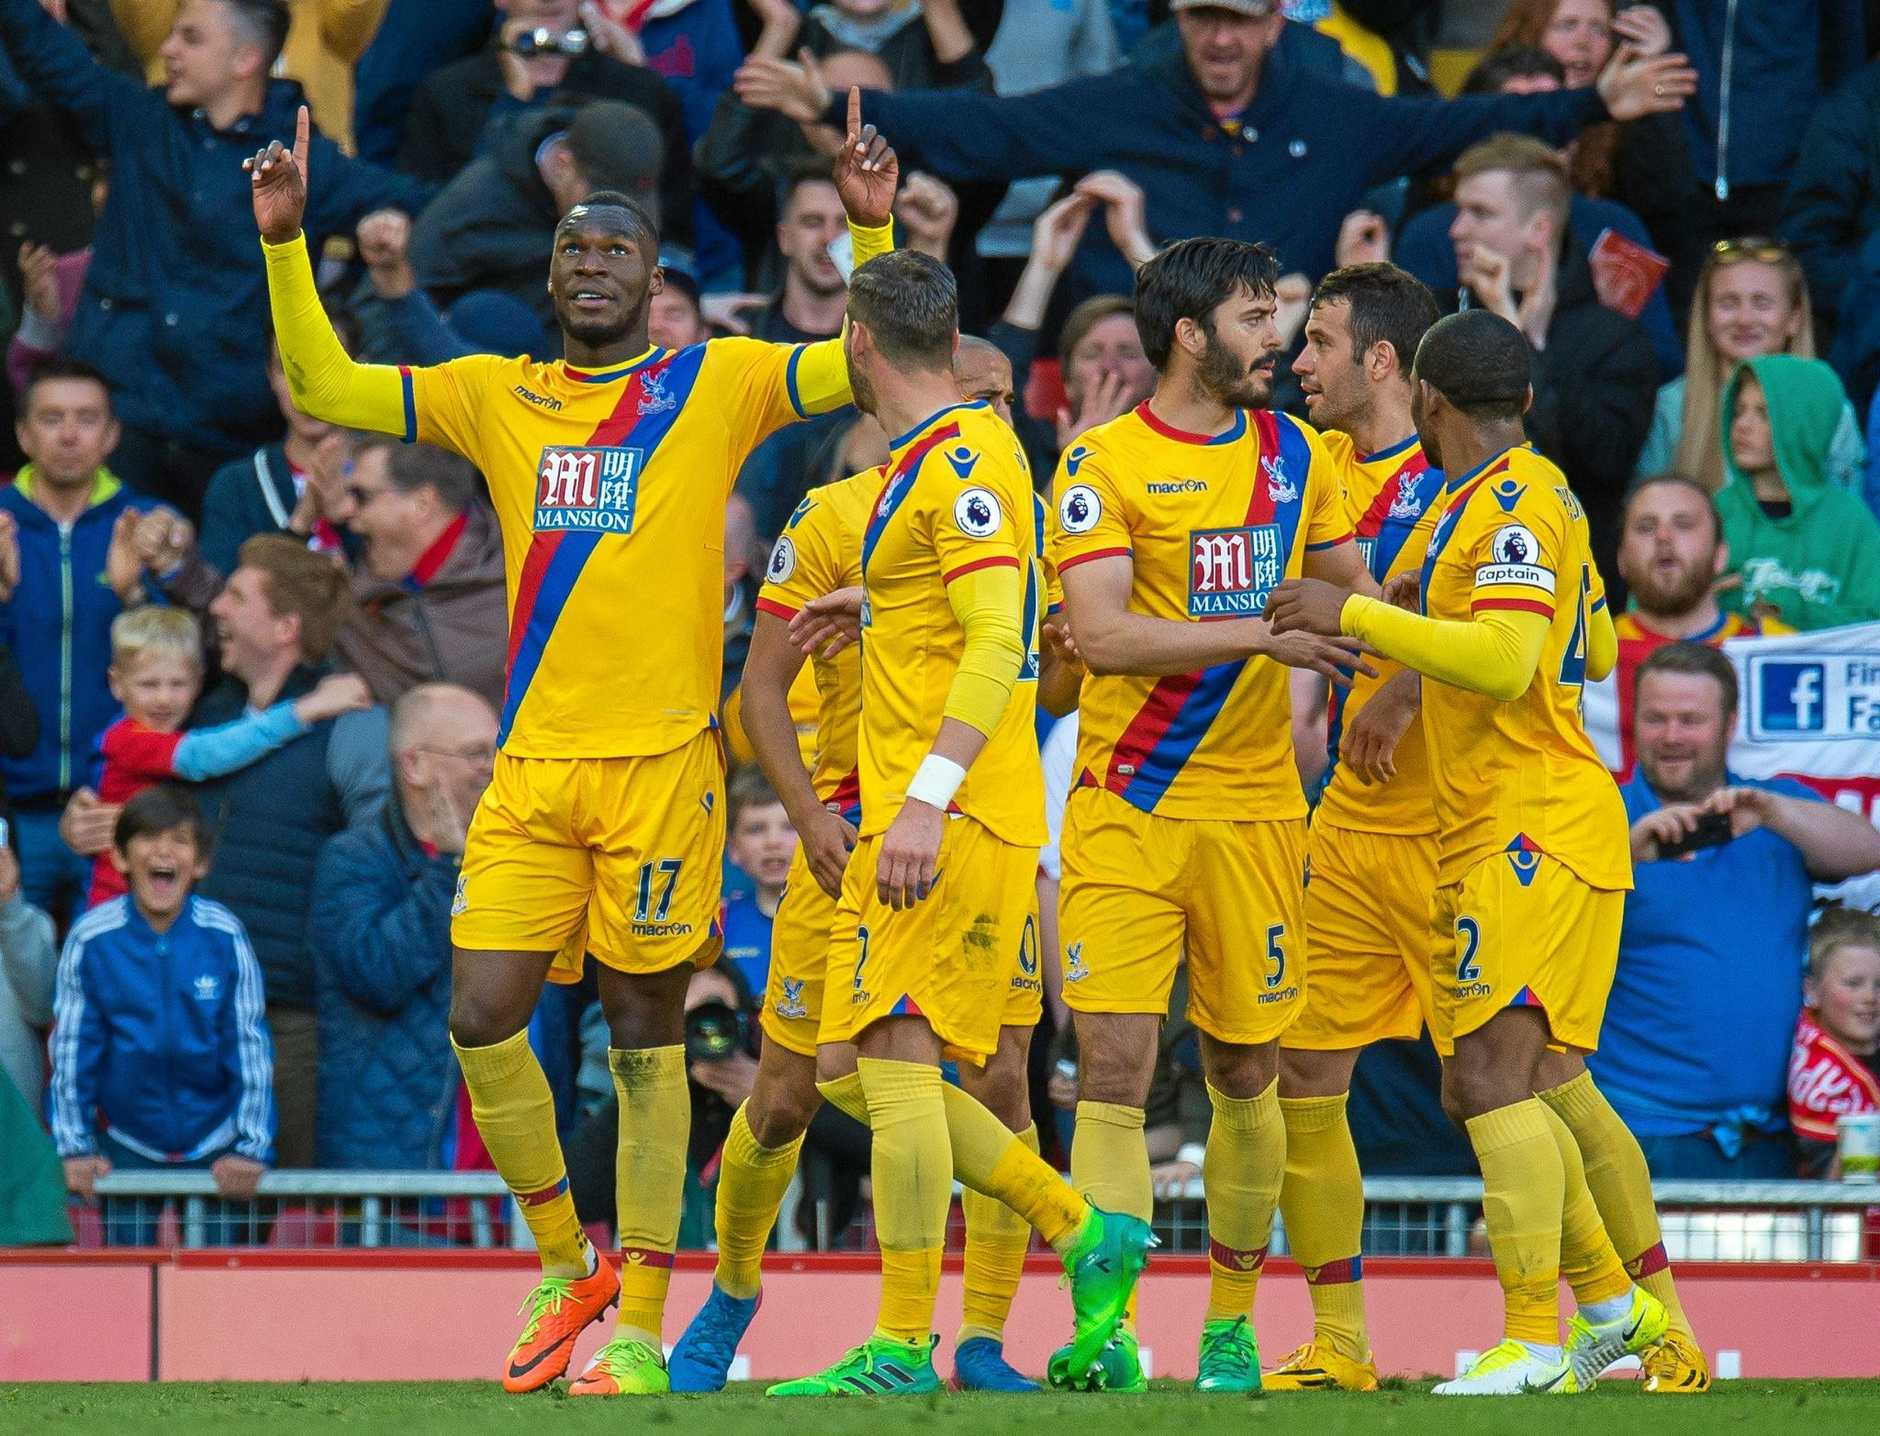 Crystal Palace's Christian Benteke (L) celebrates scoring his second goal in the 2-1 win over Liverpool.